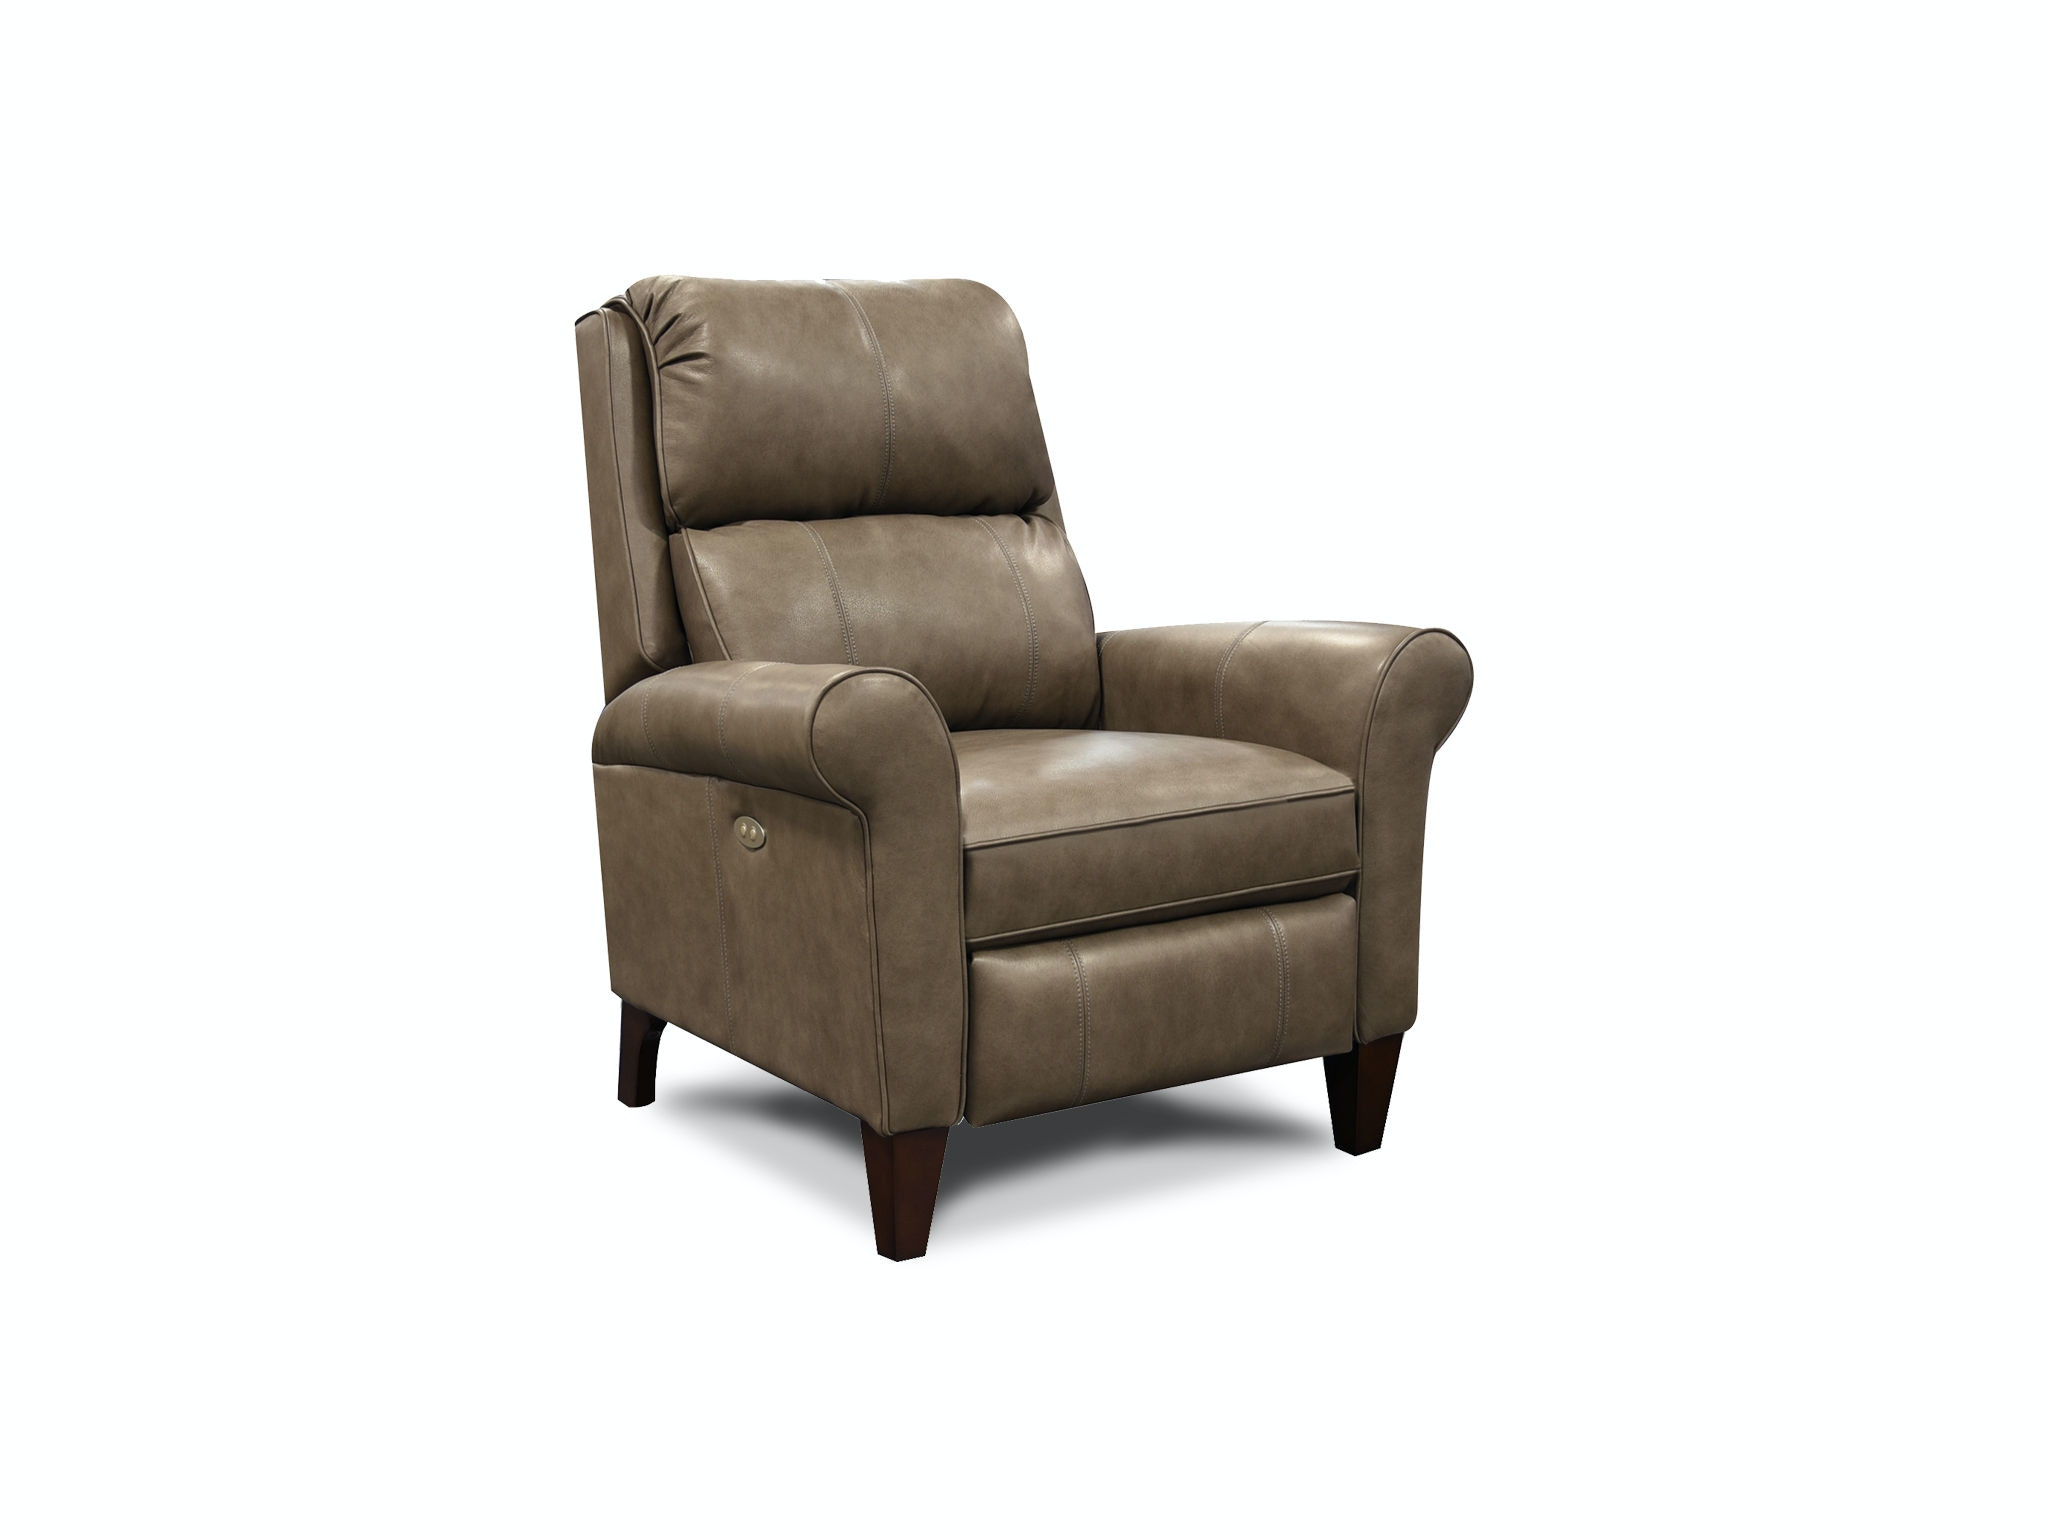 Stupendous Black Grey Or Brown Leather High Back Accent Chair Tan Ibusinesslaw Wood Chair Design Ideas Ibusinesslaworg